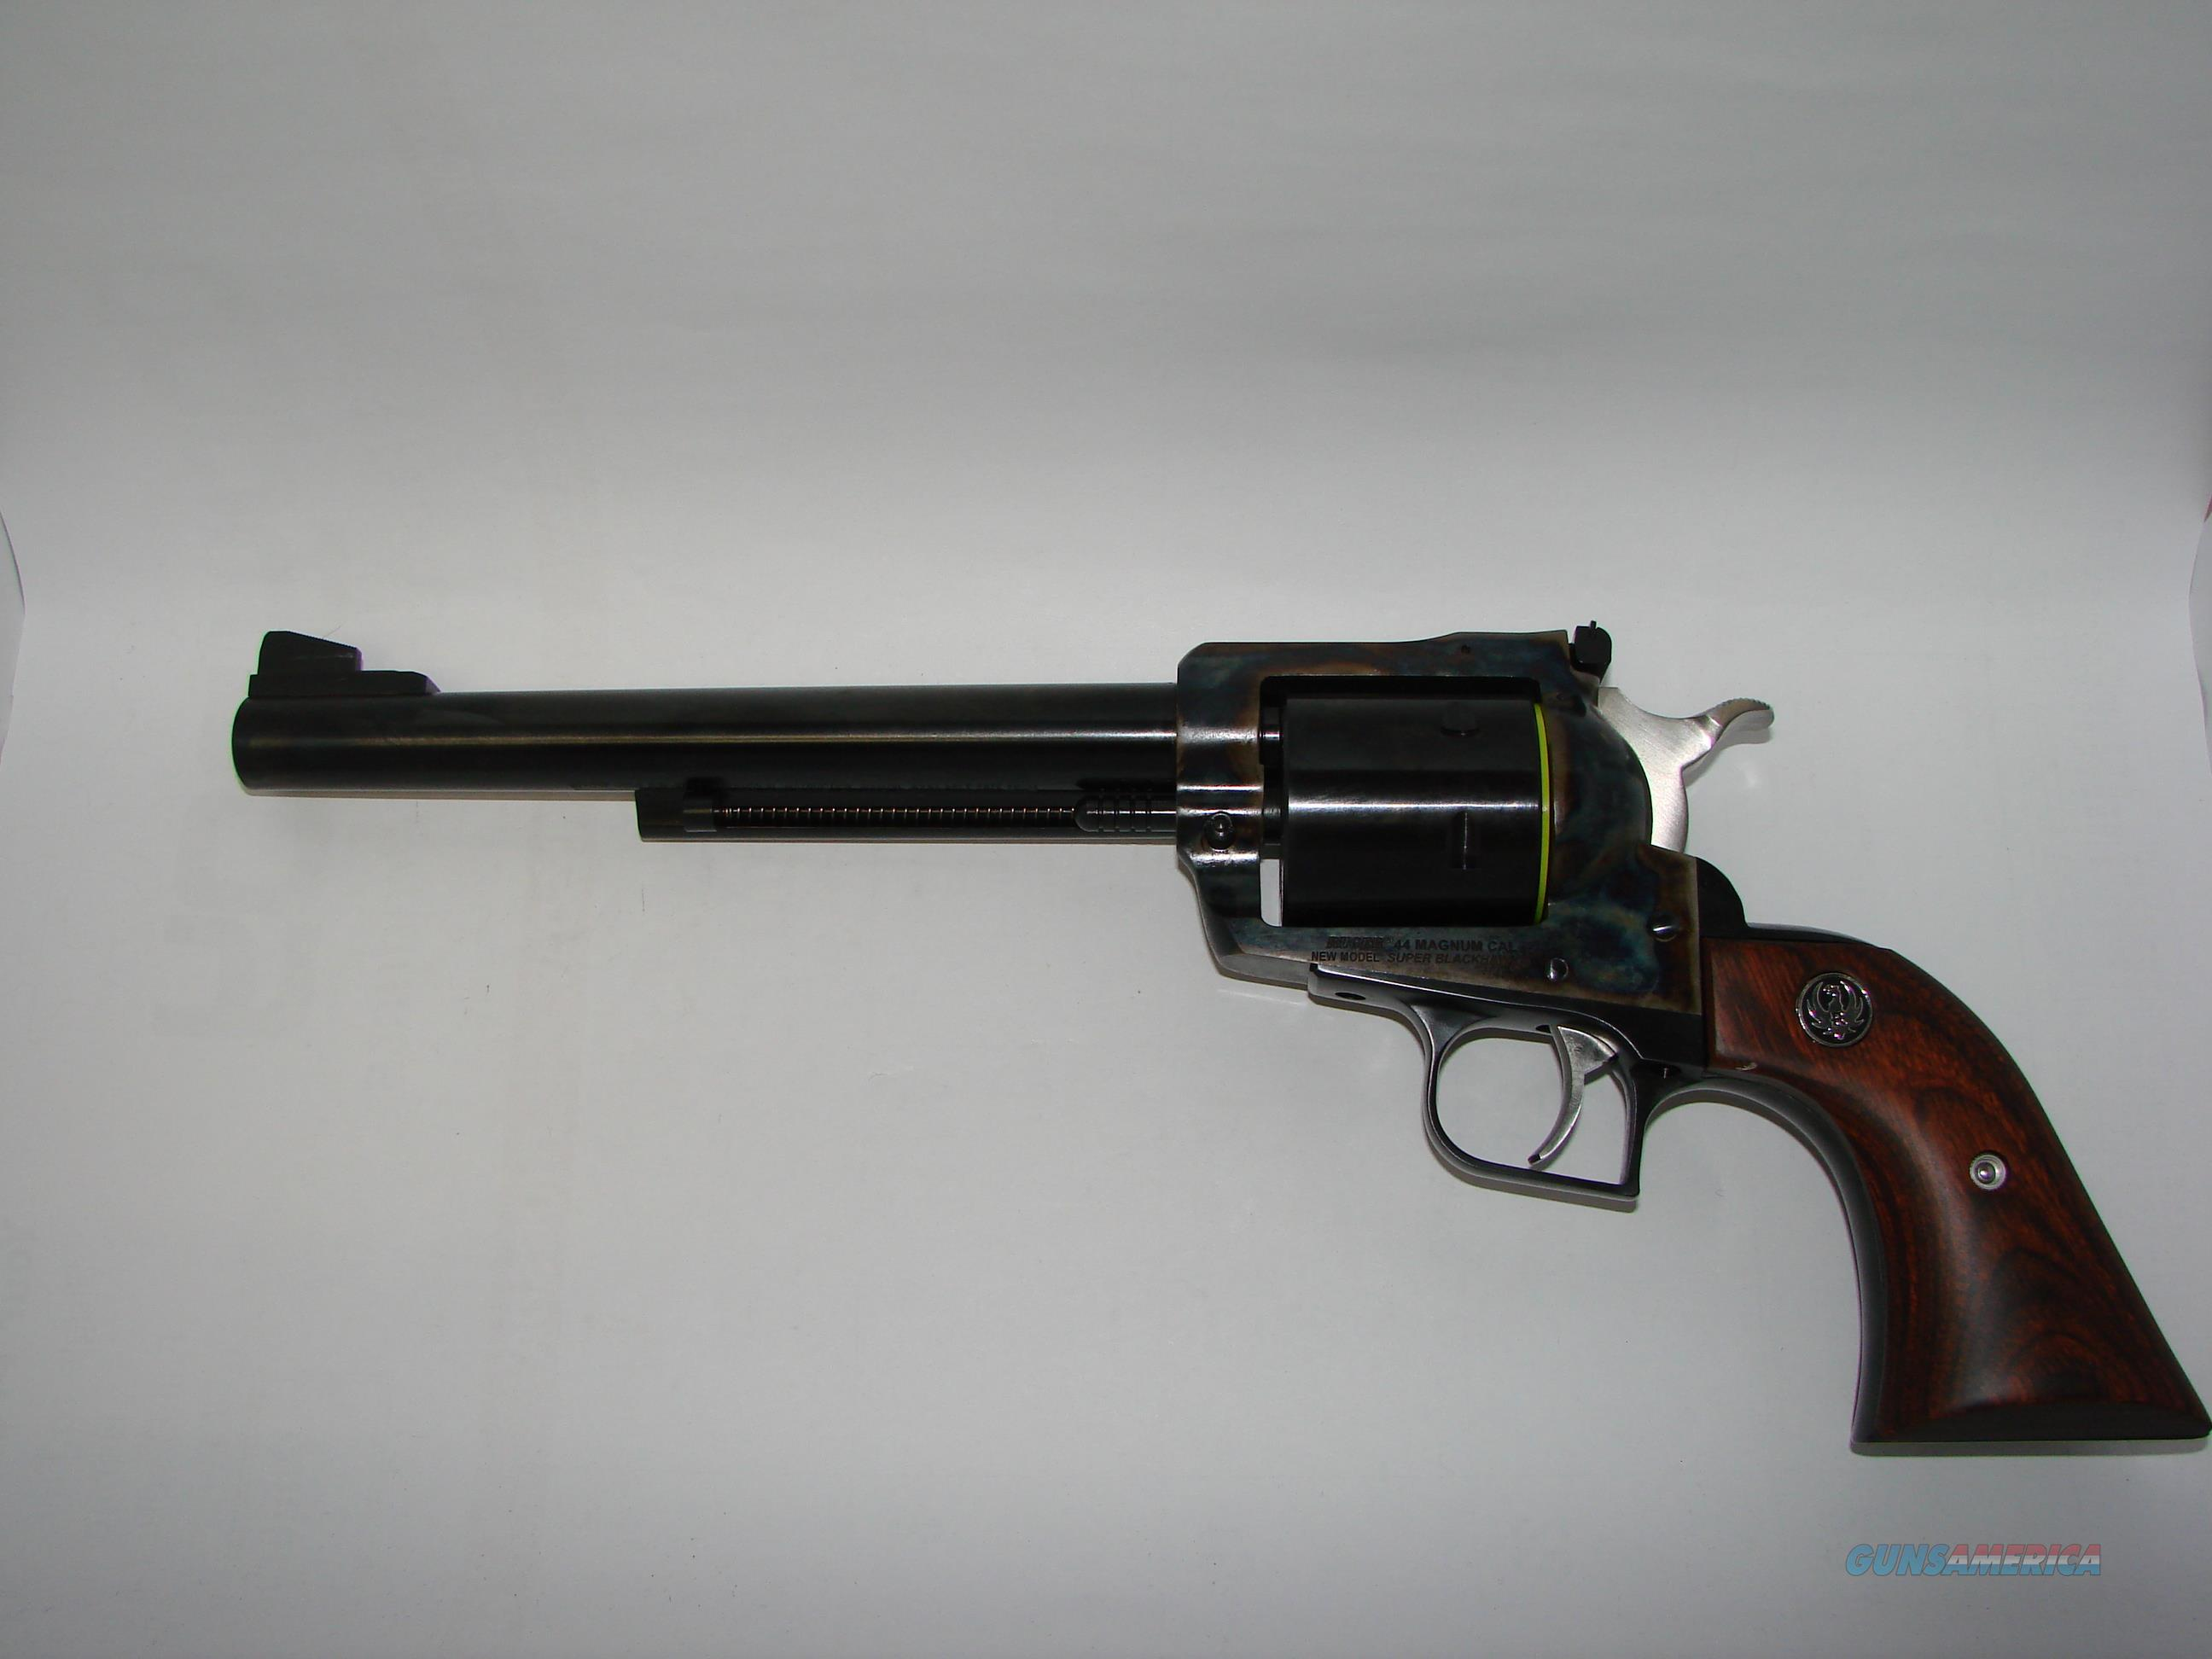 Ruger Blackhawk Turnbull Edition  Guns > Pistols > Ruger Single Action Revolvers > Blackhawk Type